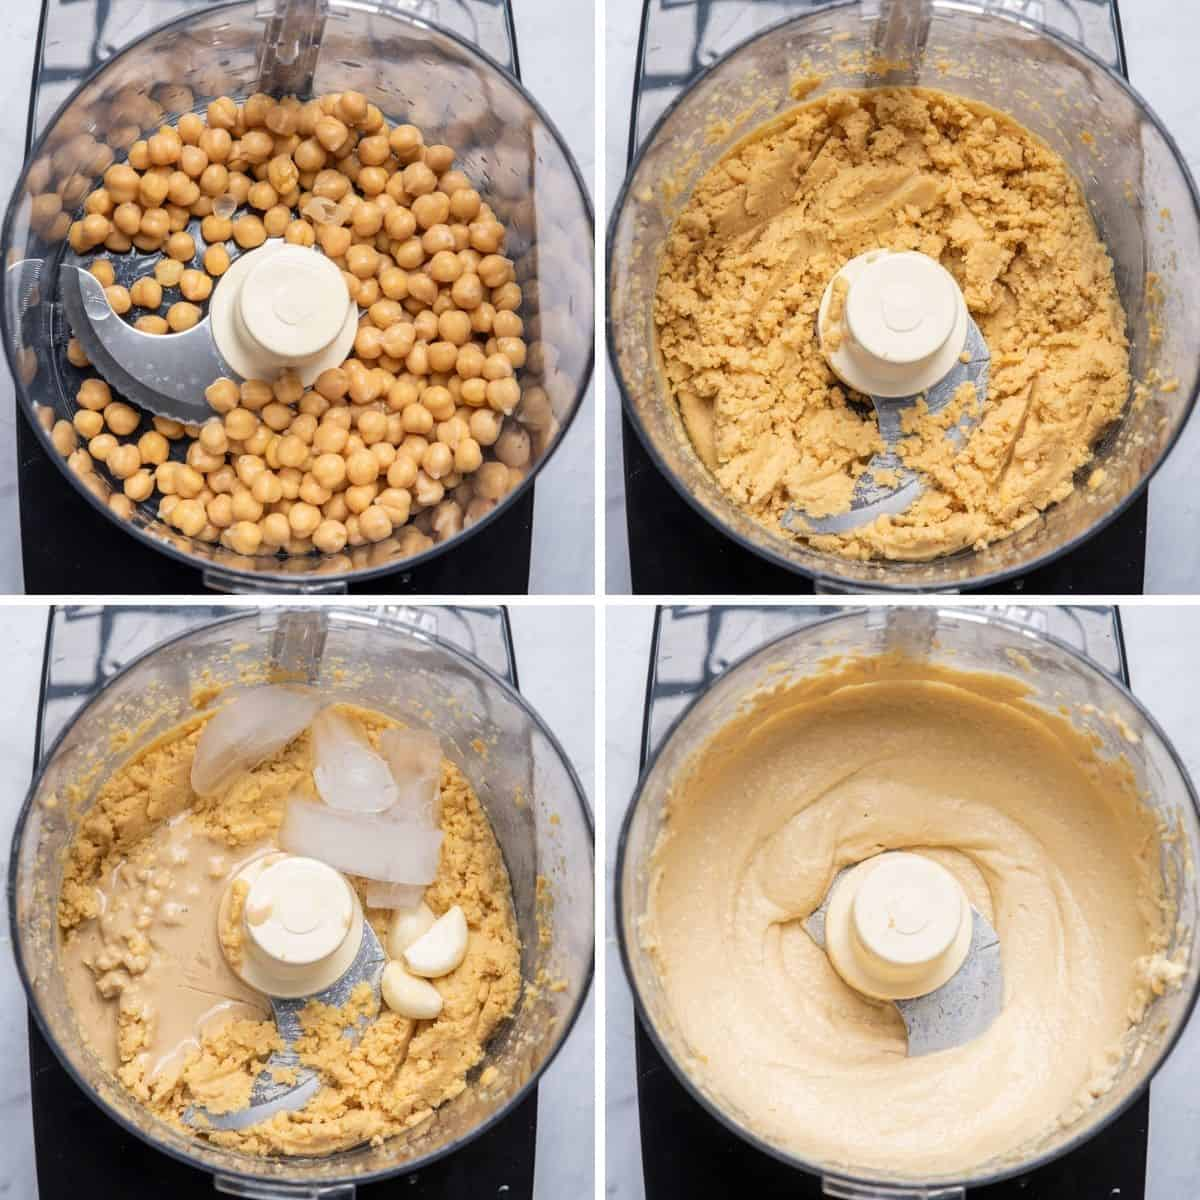 4 image collage to show how to make hummus